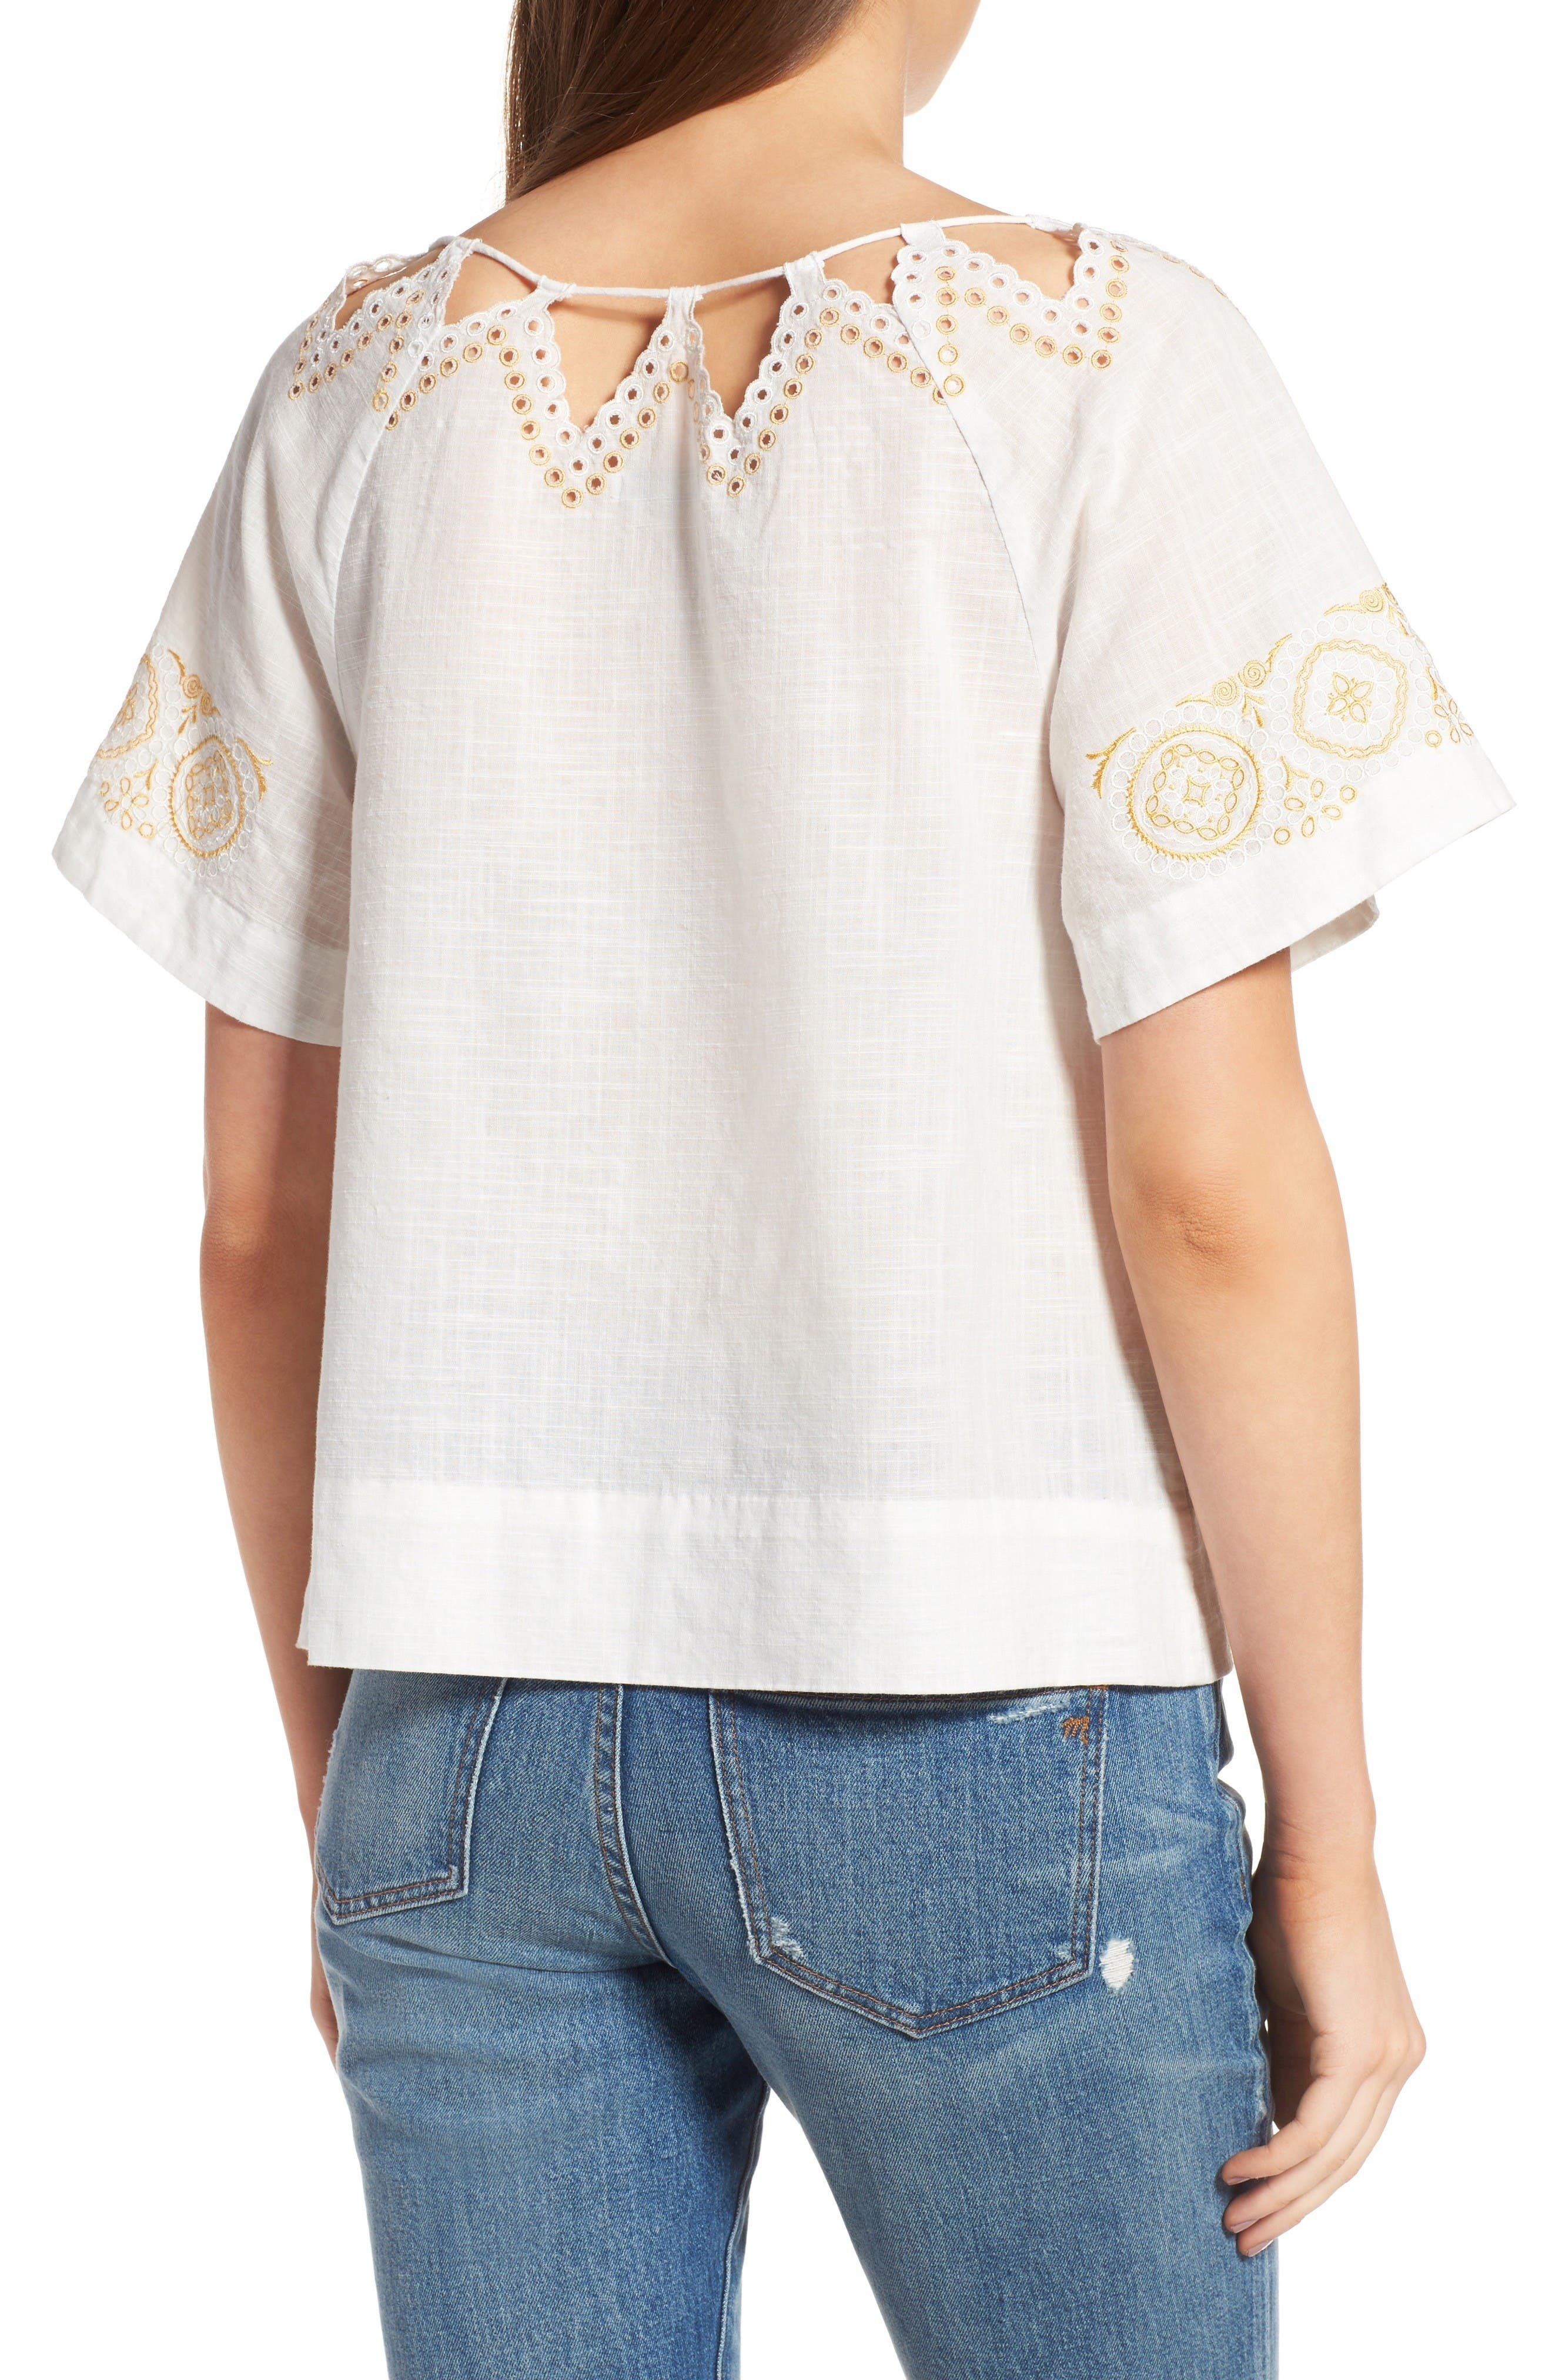 Alternate Image 3  - Madewell Eyelet Peekaboo Top